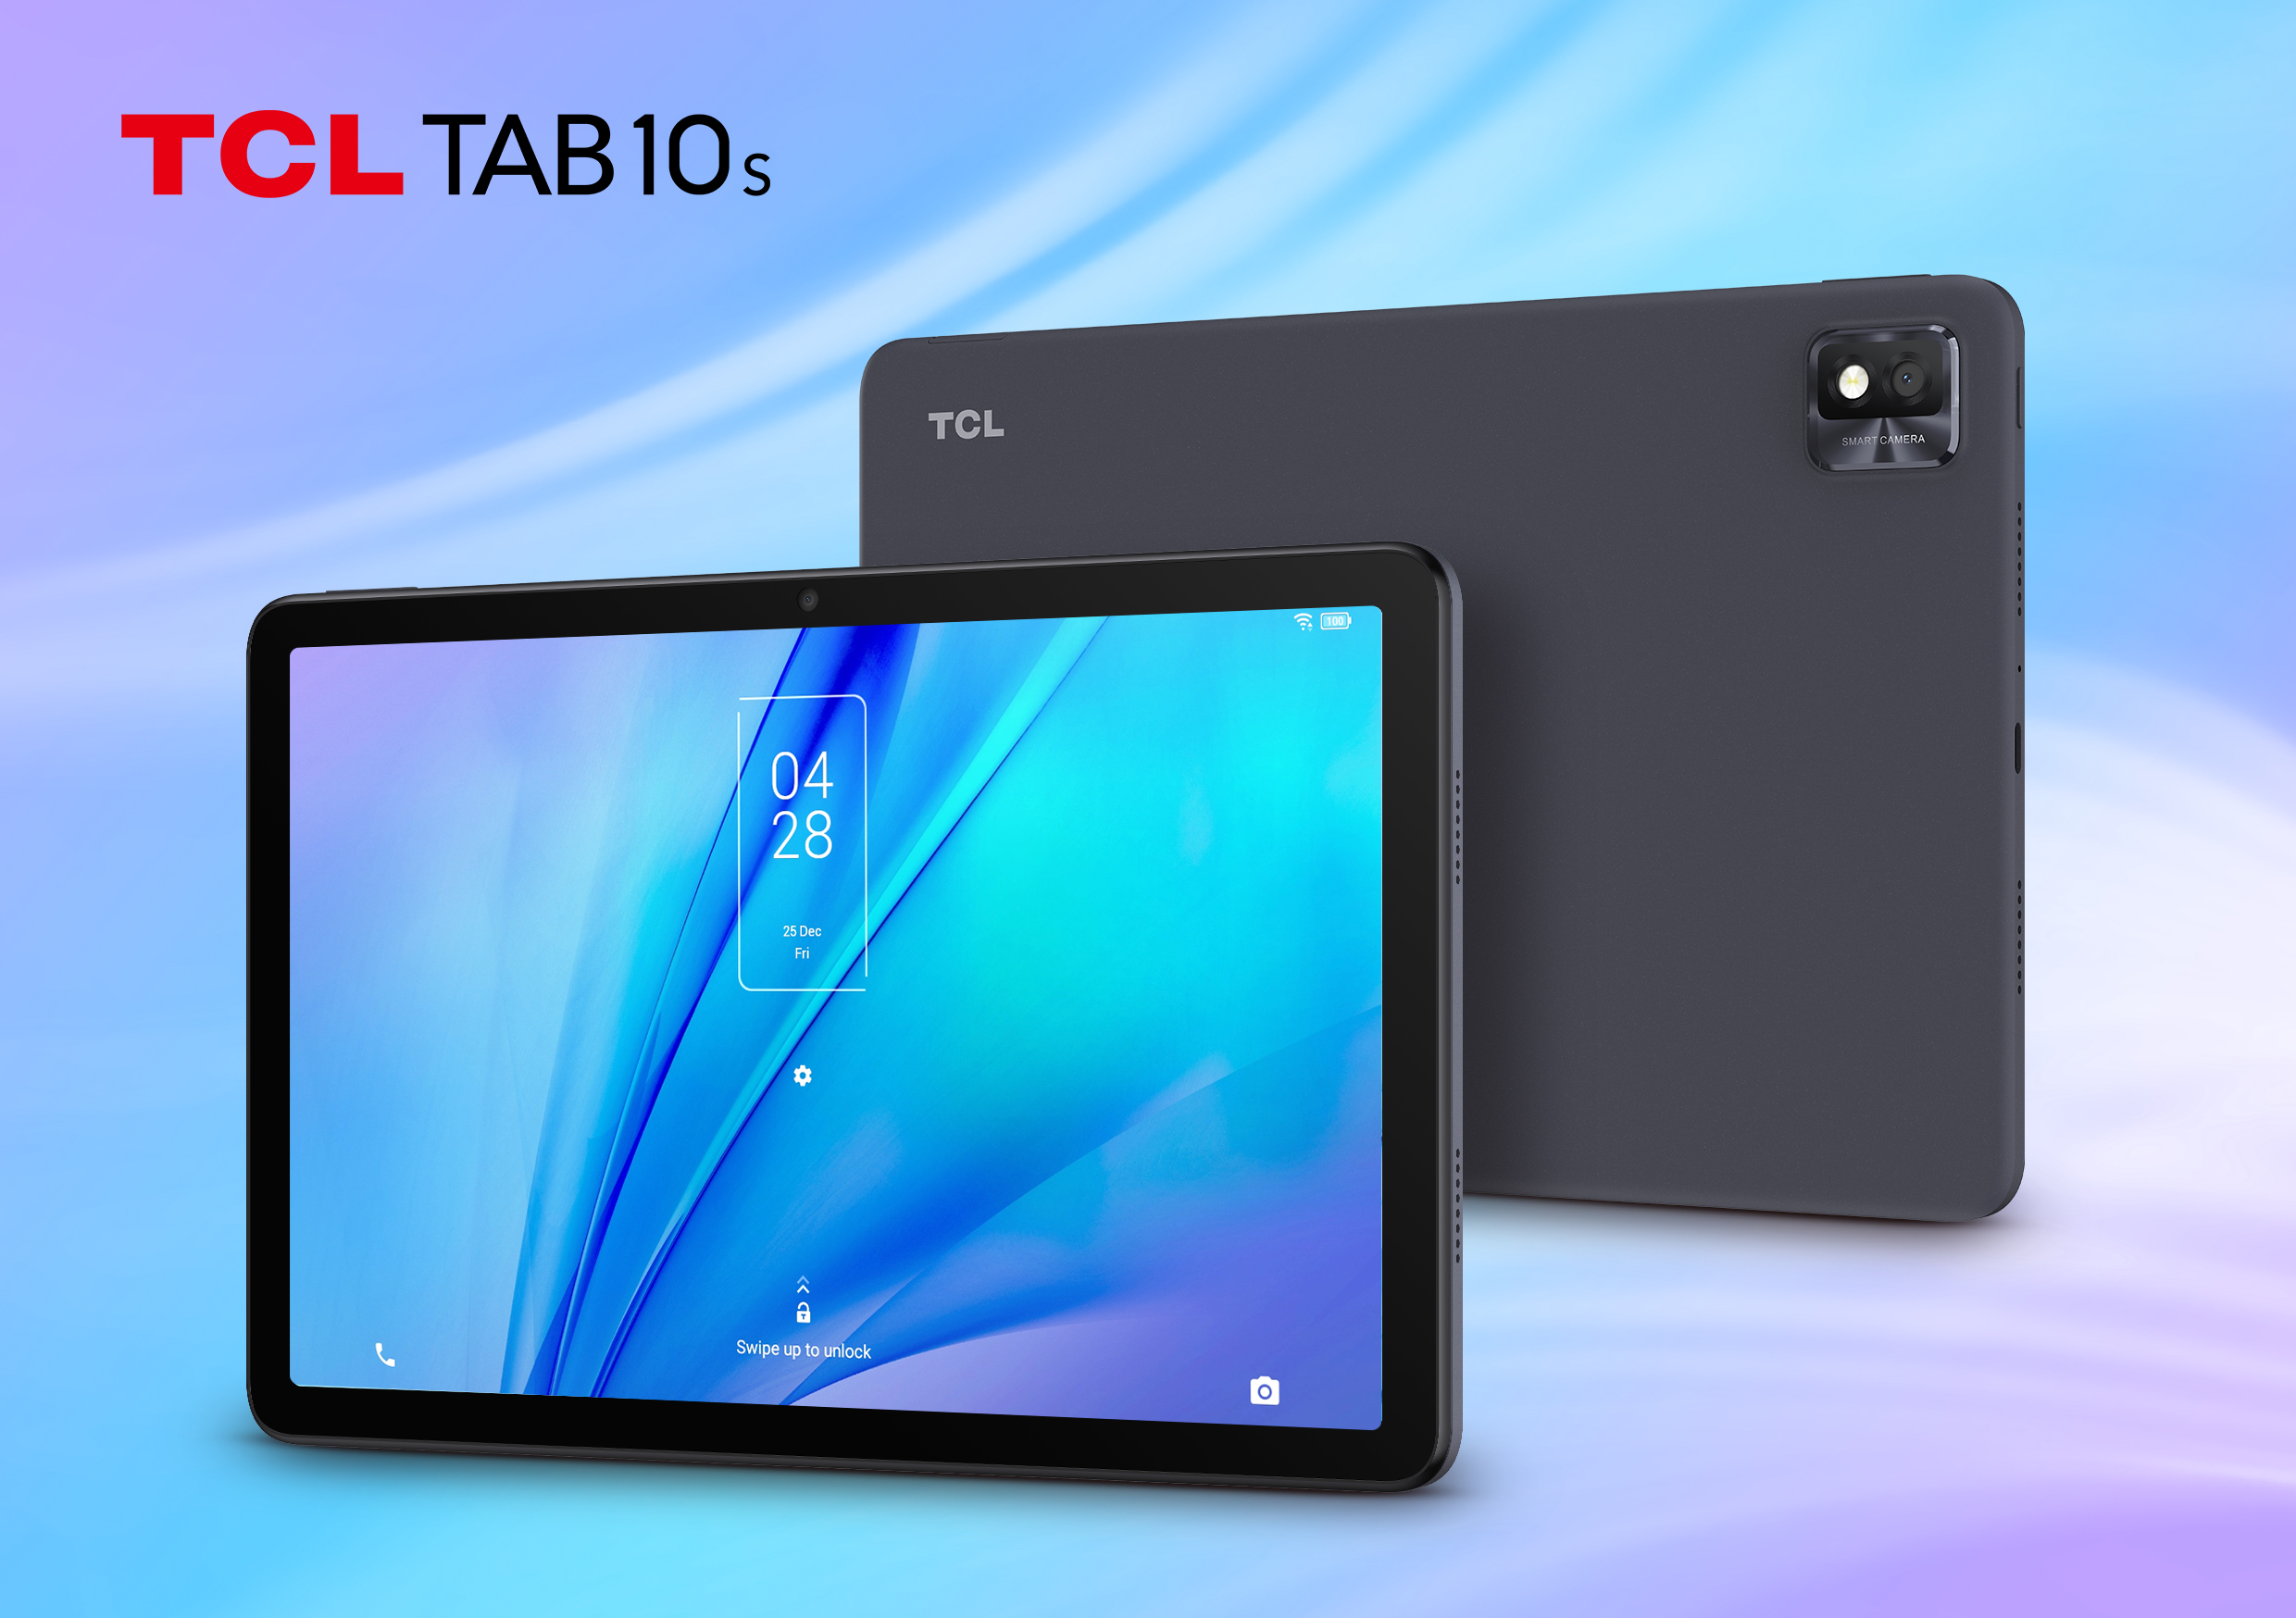 TCL TAB 10S Android tablet in Dark Grey colorway